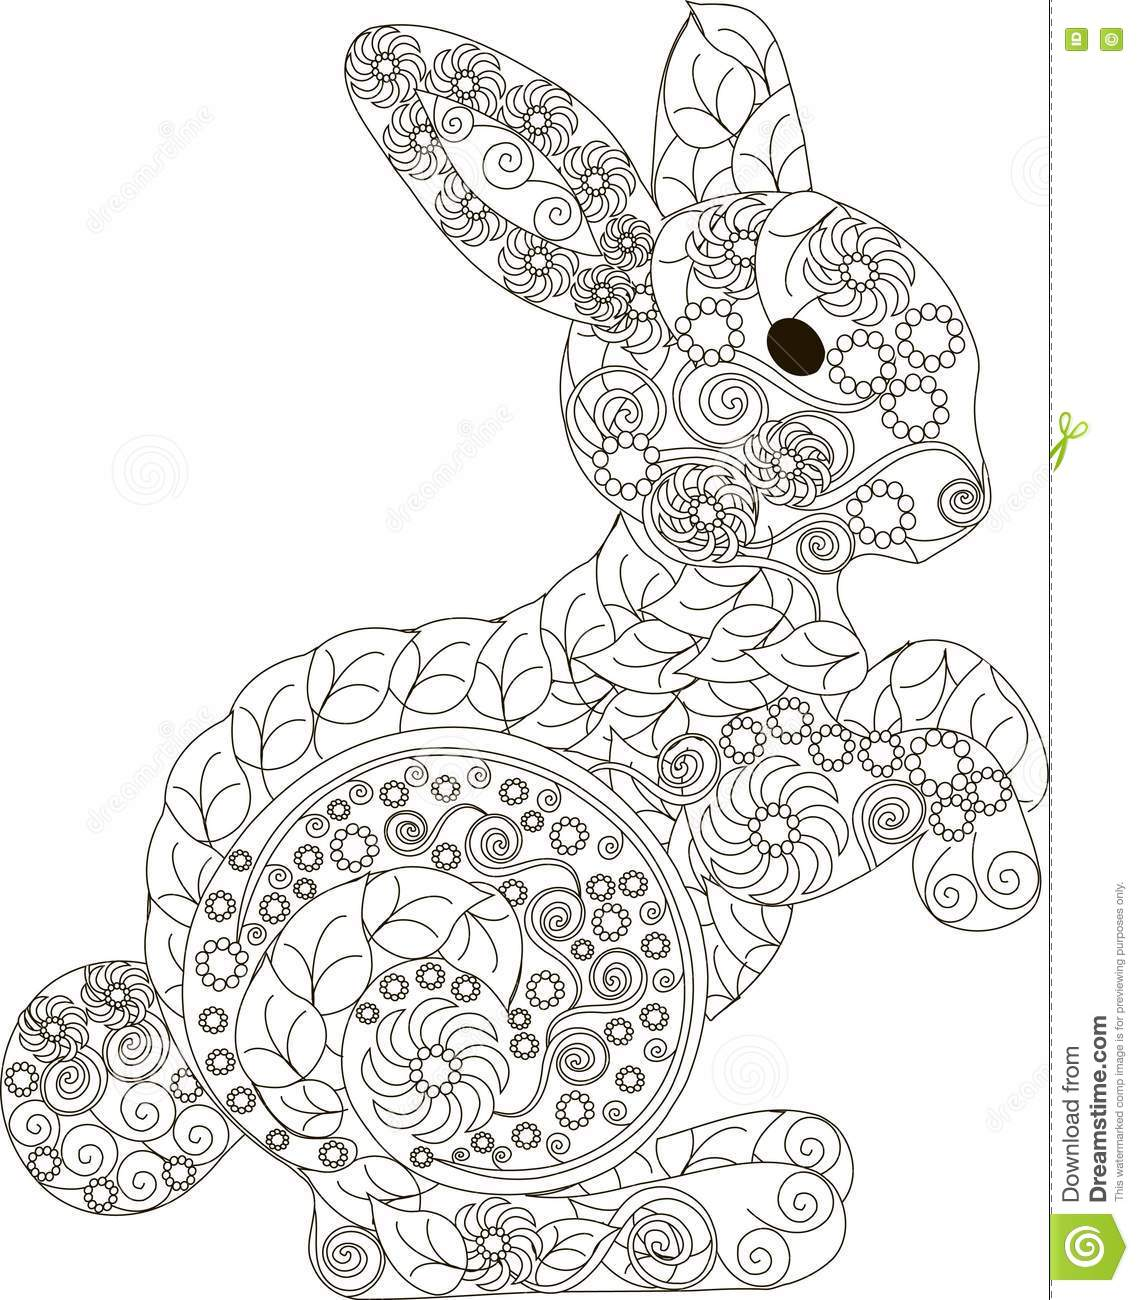 Zentangle Stylized Black And White Hand Drawn Rabbit